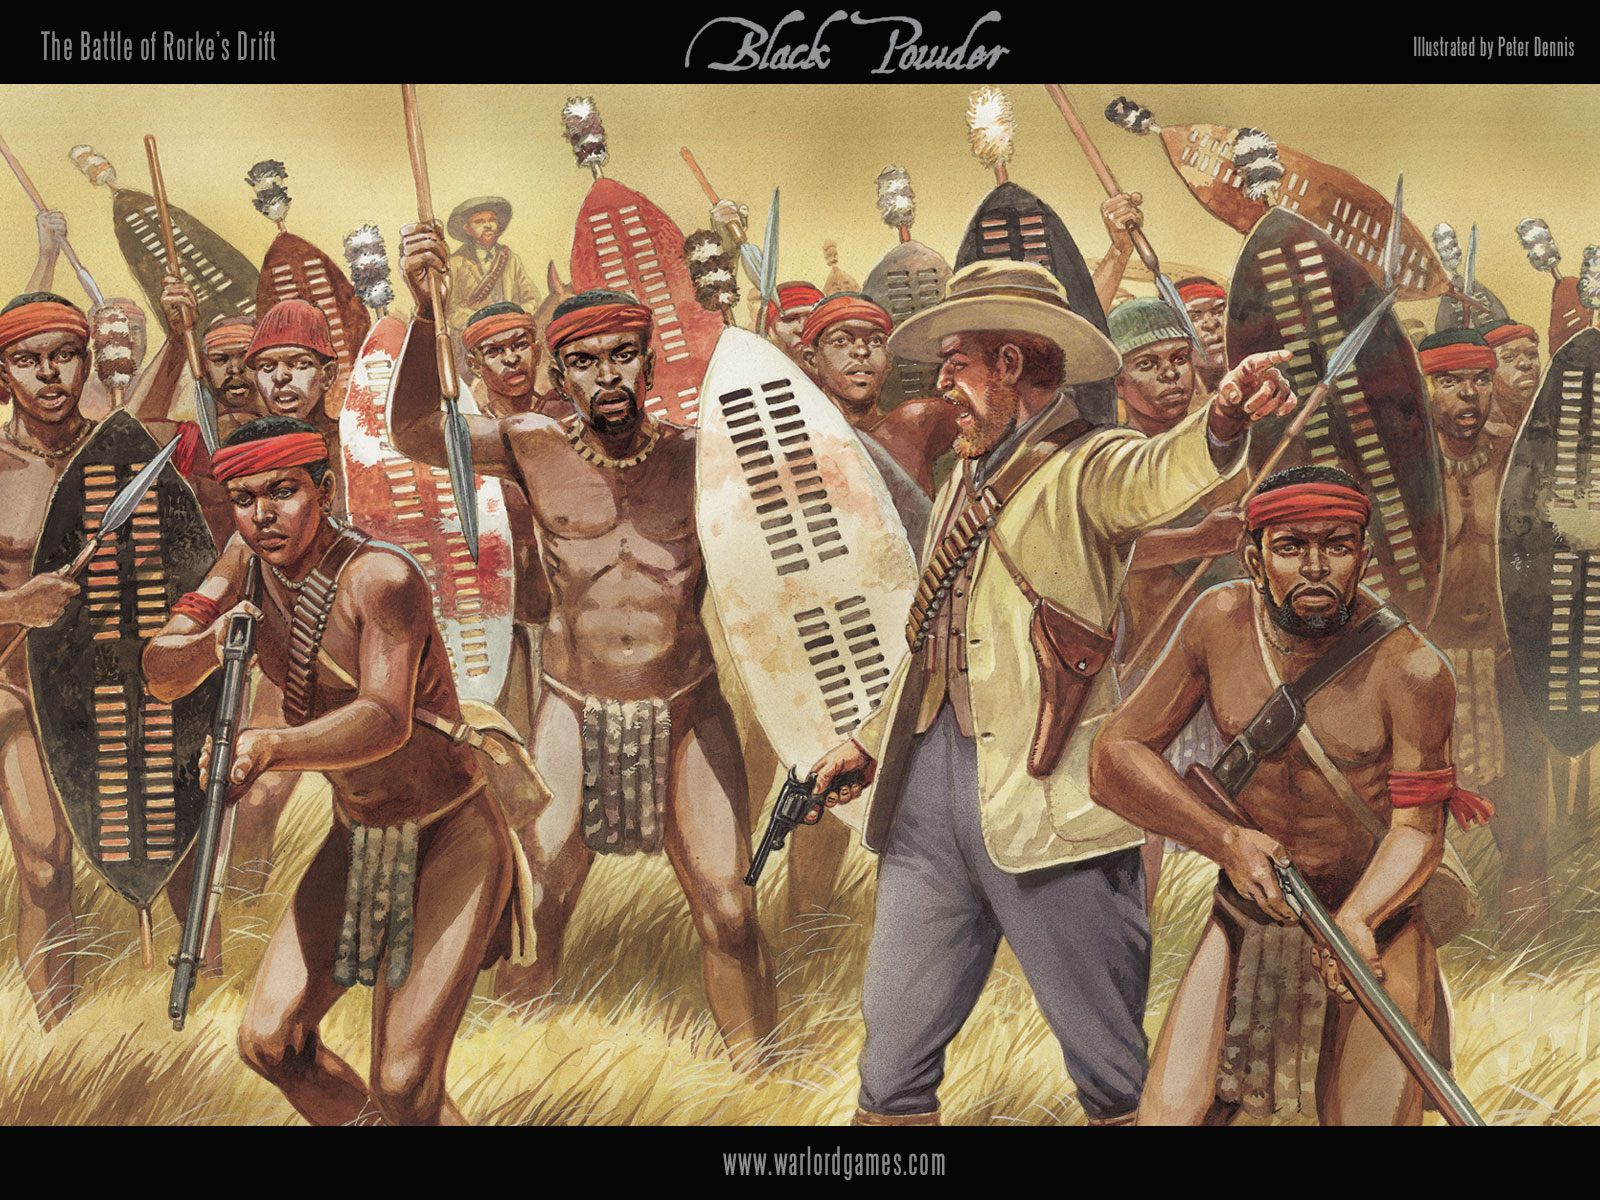 british imperialist history the anglo zulu war The anglo-zulu war was one of many colonial campaigns in which the british army served as the instrument of british imperialism the conflict, fought against a native adversary the british initially under-estimated, is remarkable for battles that included perhaps the most humiliating defeat in british military history-the battle of isandlwana, january 22, 1879-and one of its most heroic feats.